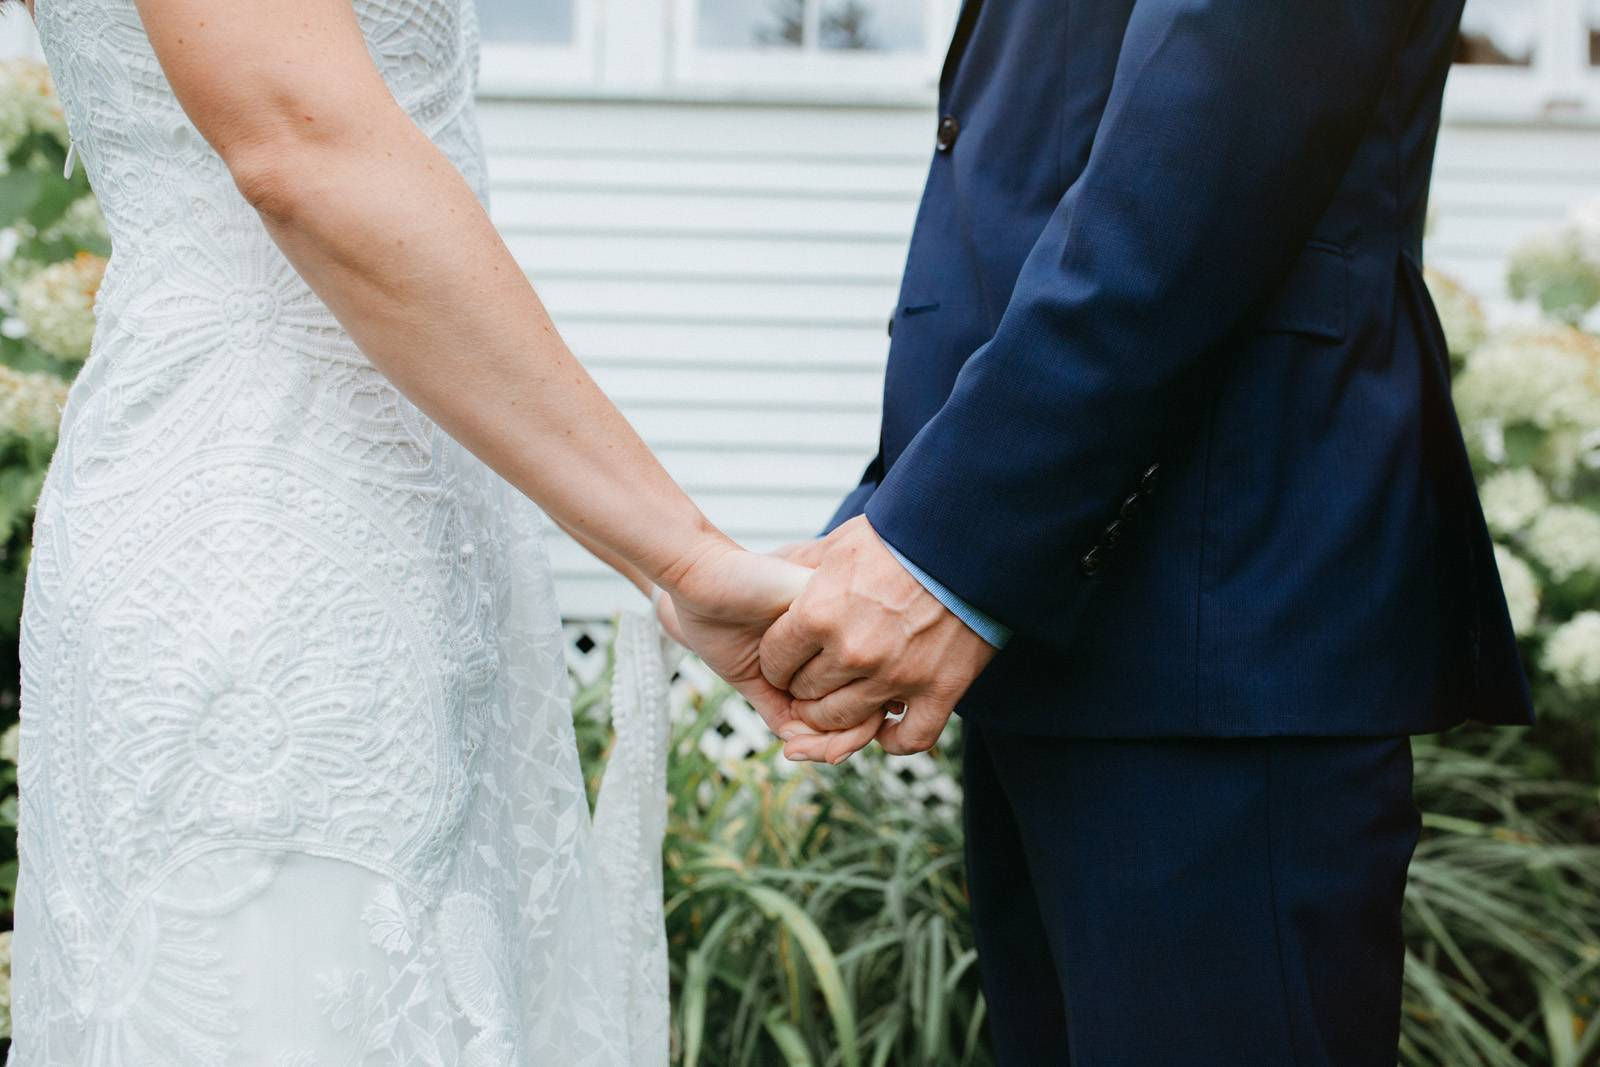 Close up of bride and groom holding hands, showcasing bride's lace dress